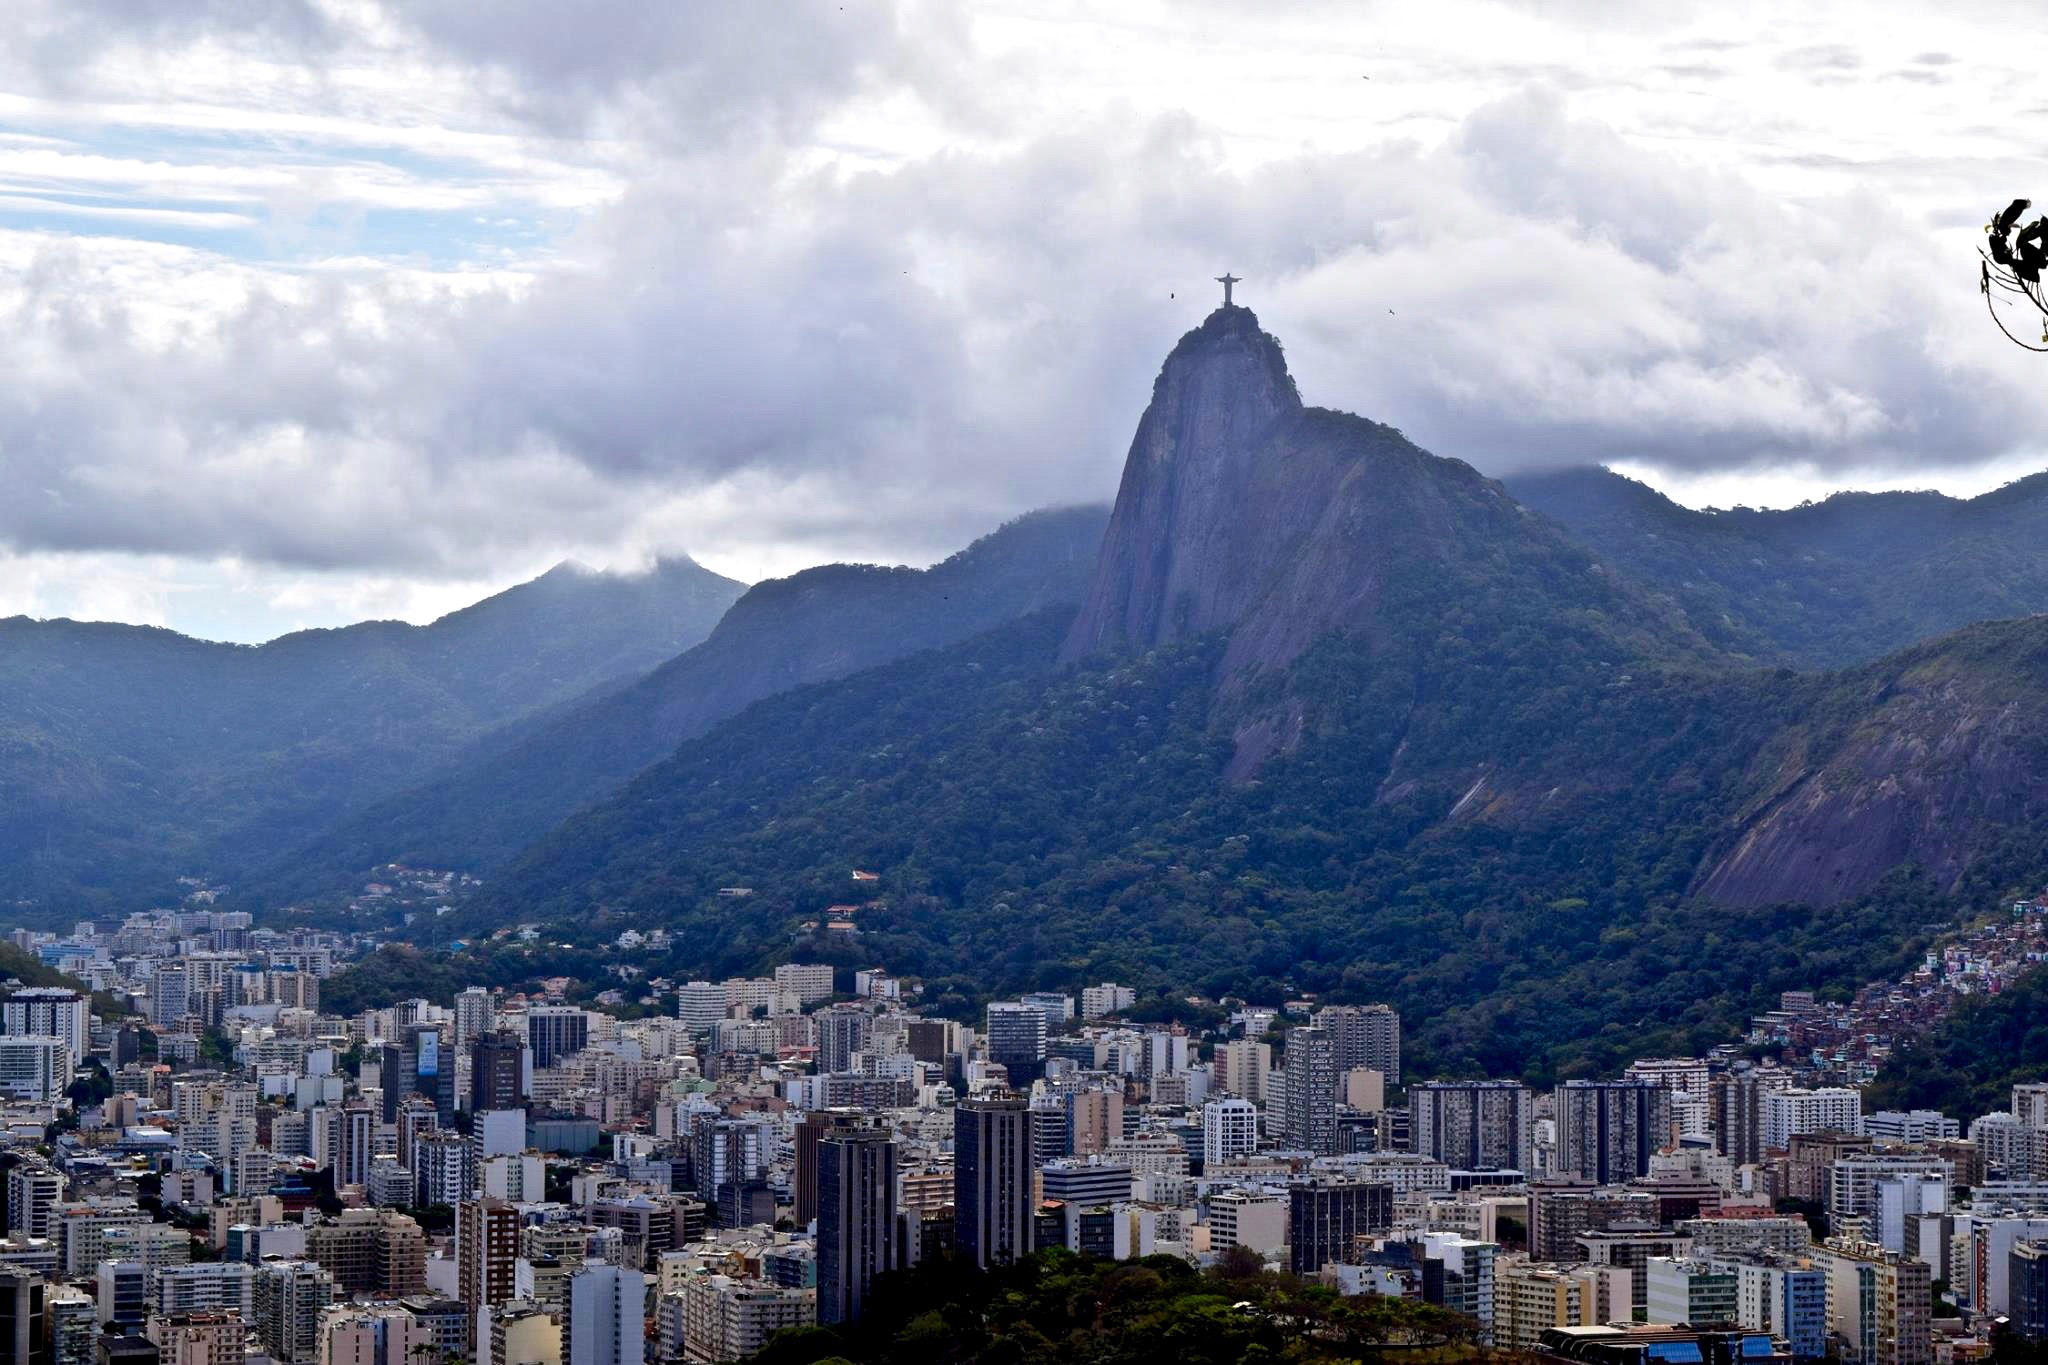 View of the Corcovado Mountain from the Sugarloaf